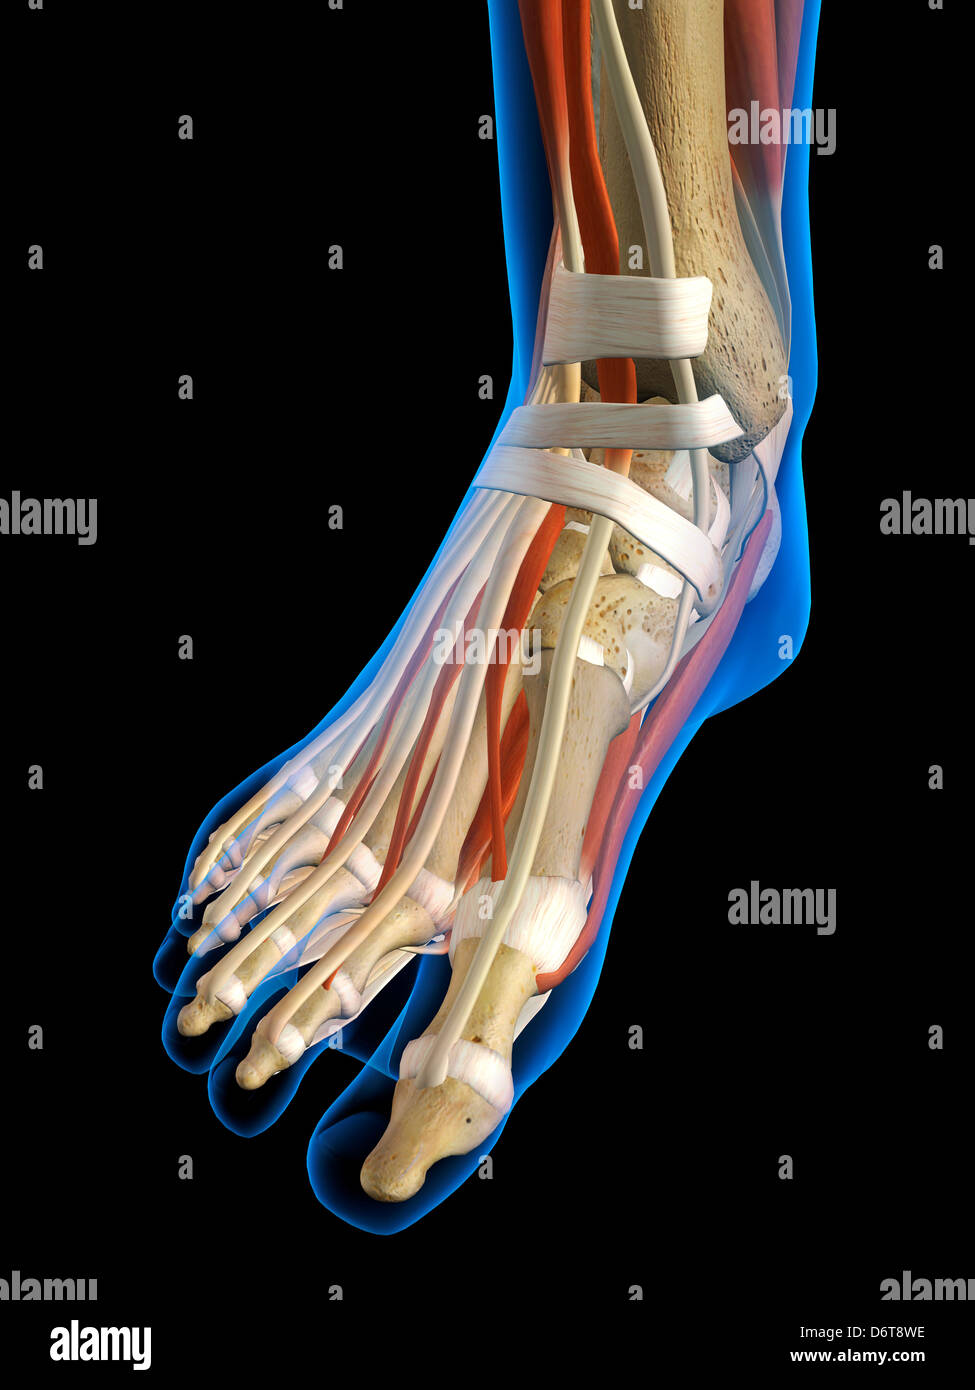 Front View X-Ray female ankle foot bones muscles ligaments Full ...